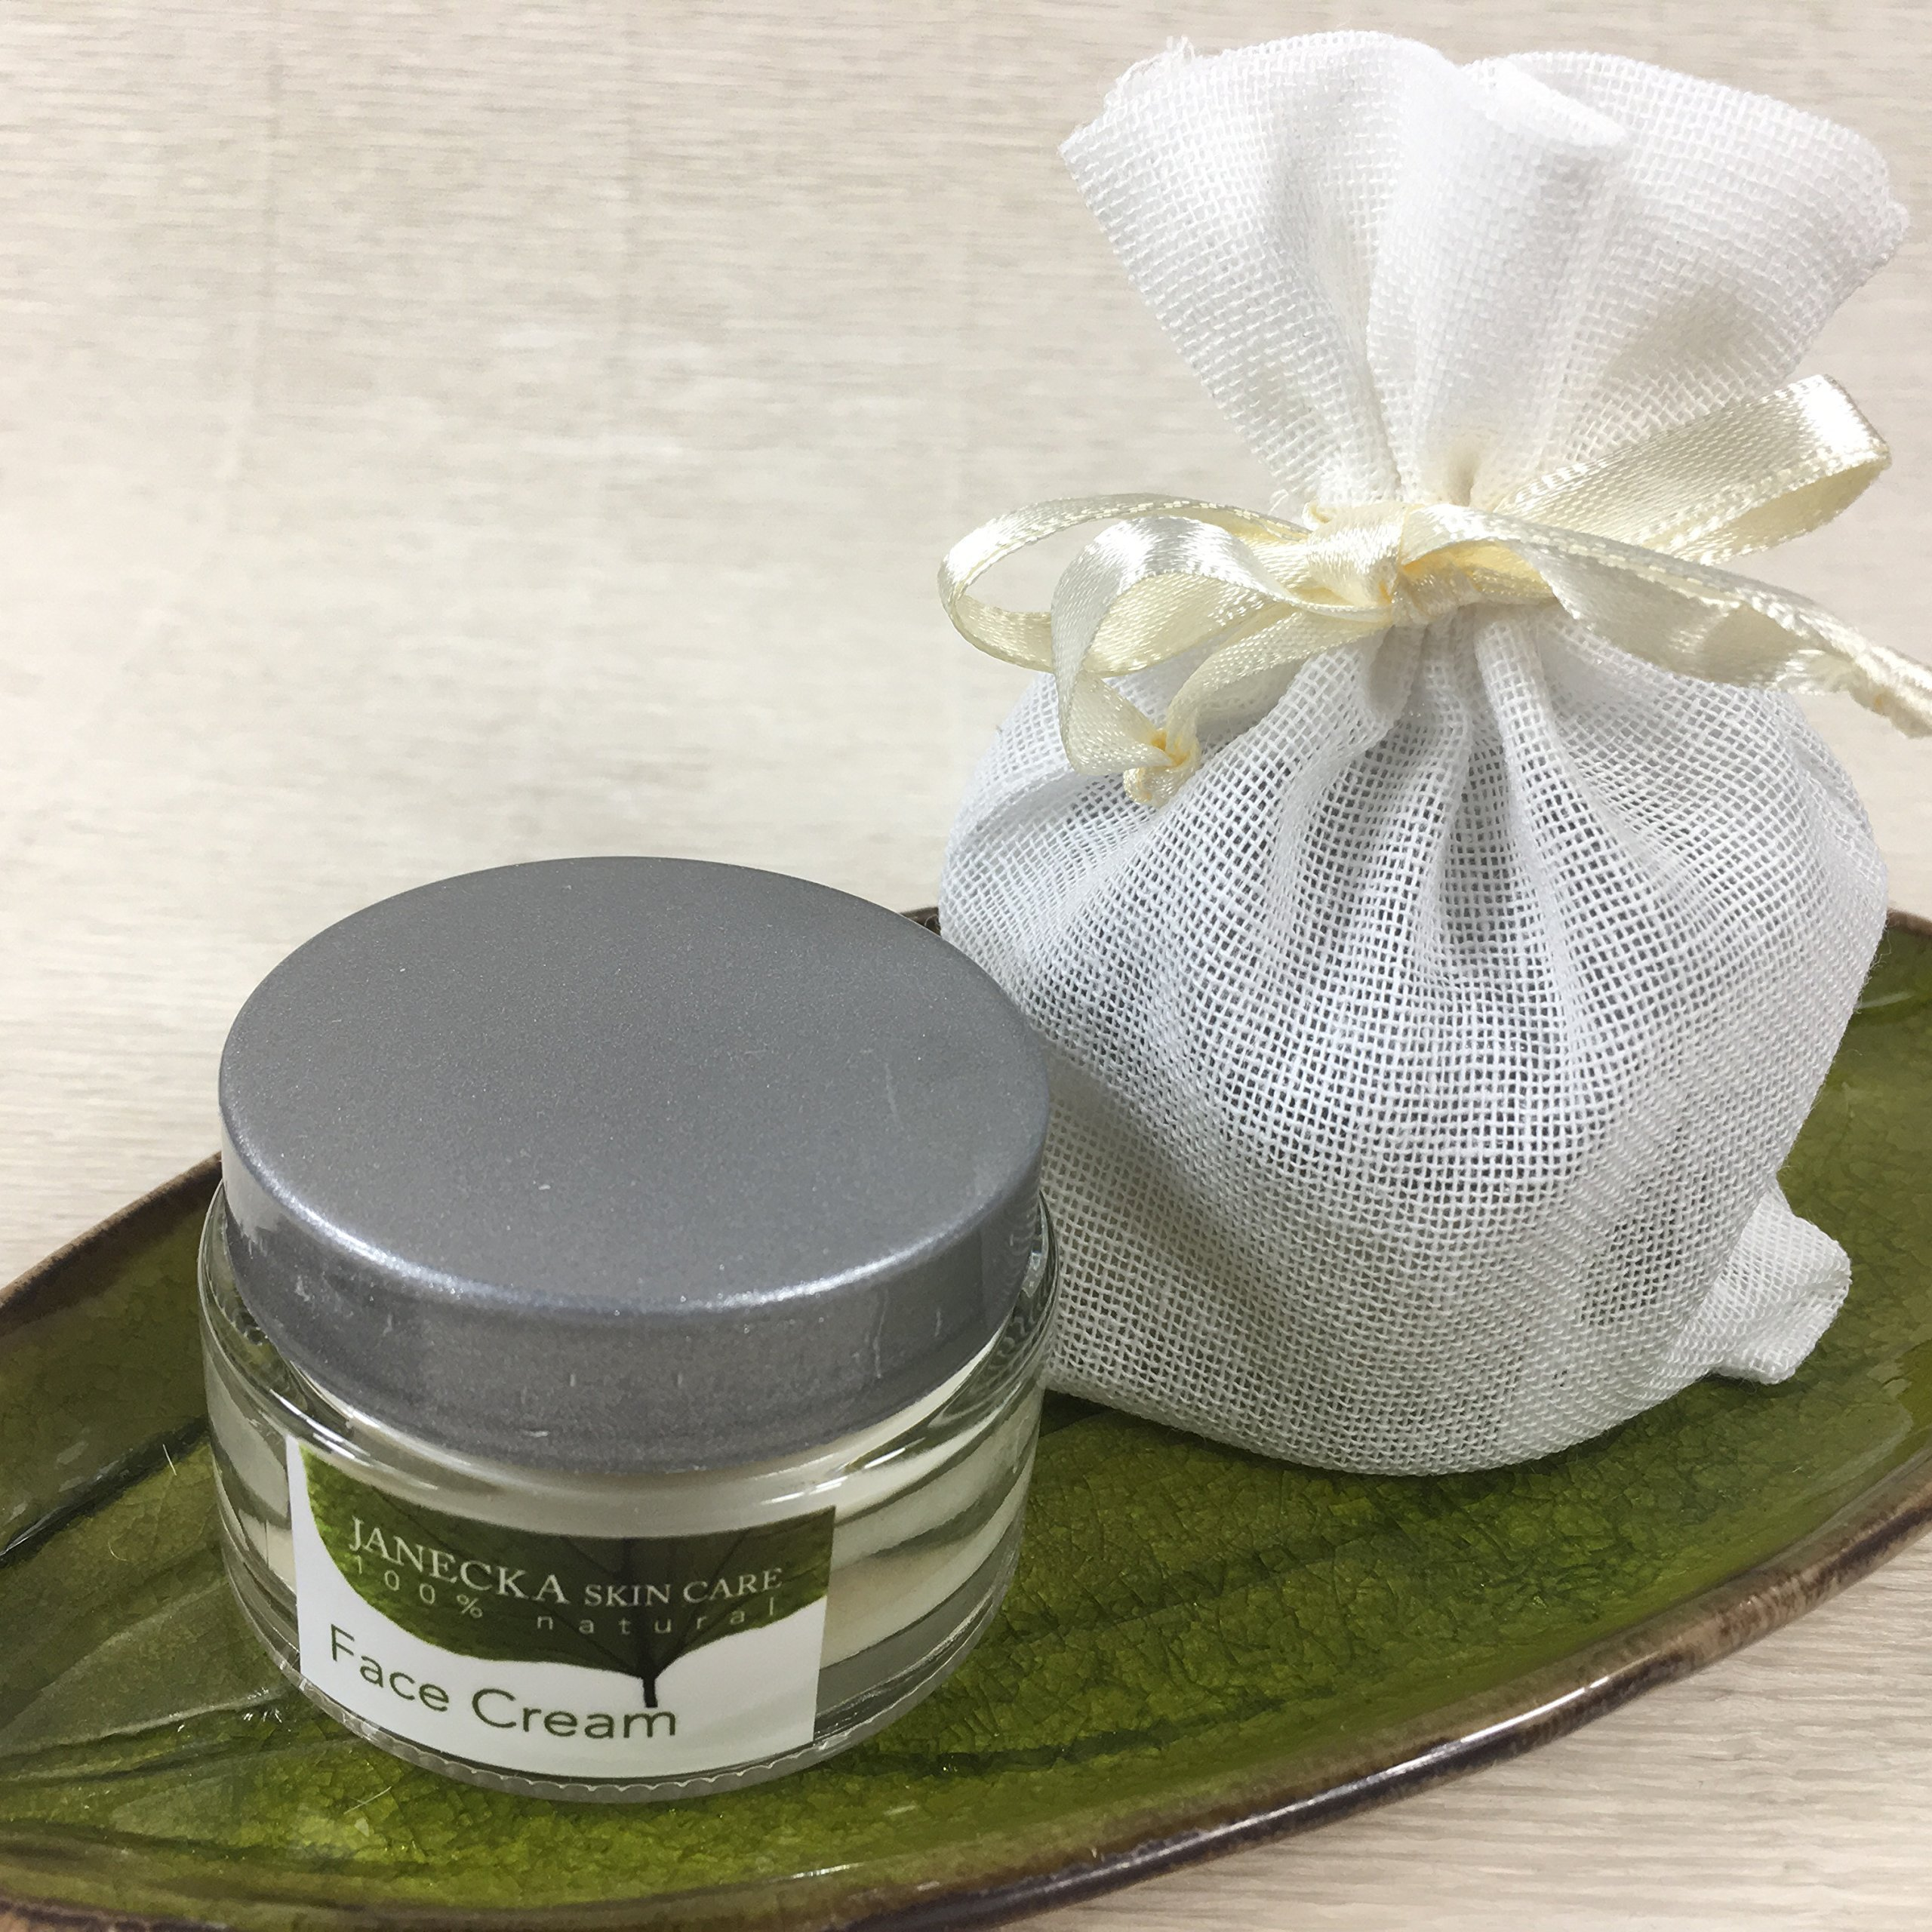 JANECKA Face Cream (2-1 oz Jars) Natural Ingredients - Concentrated Formula - Cocoa Butter - Shea Butter - Coconut Oil